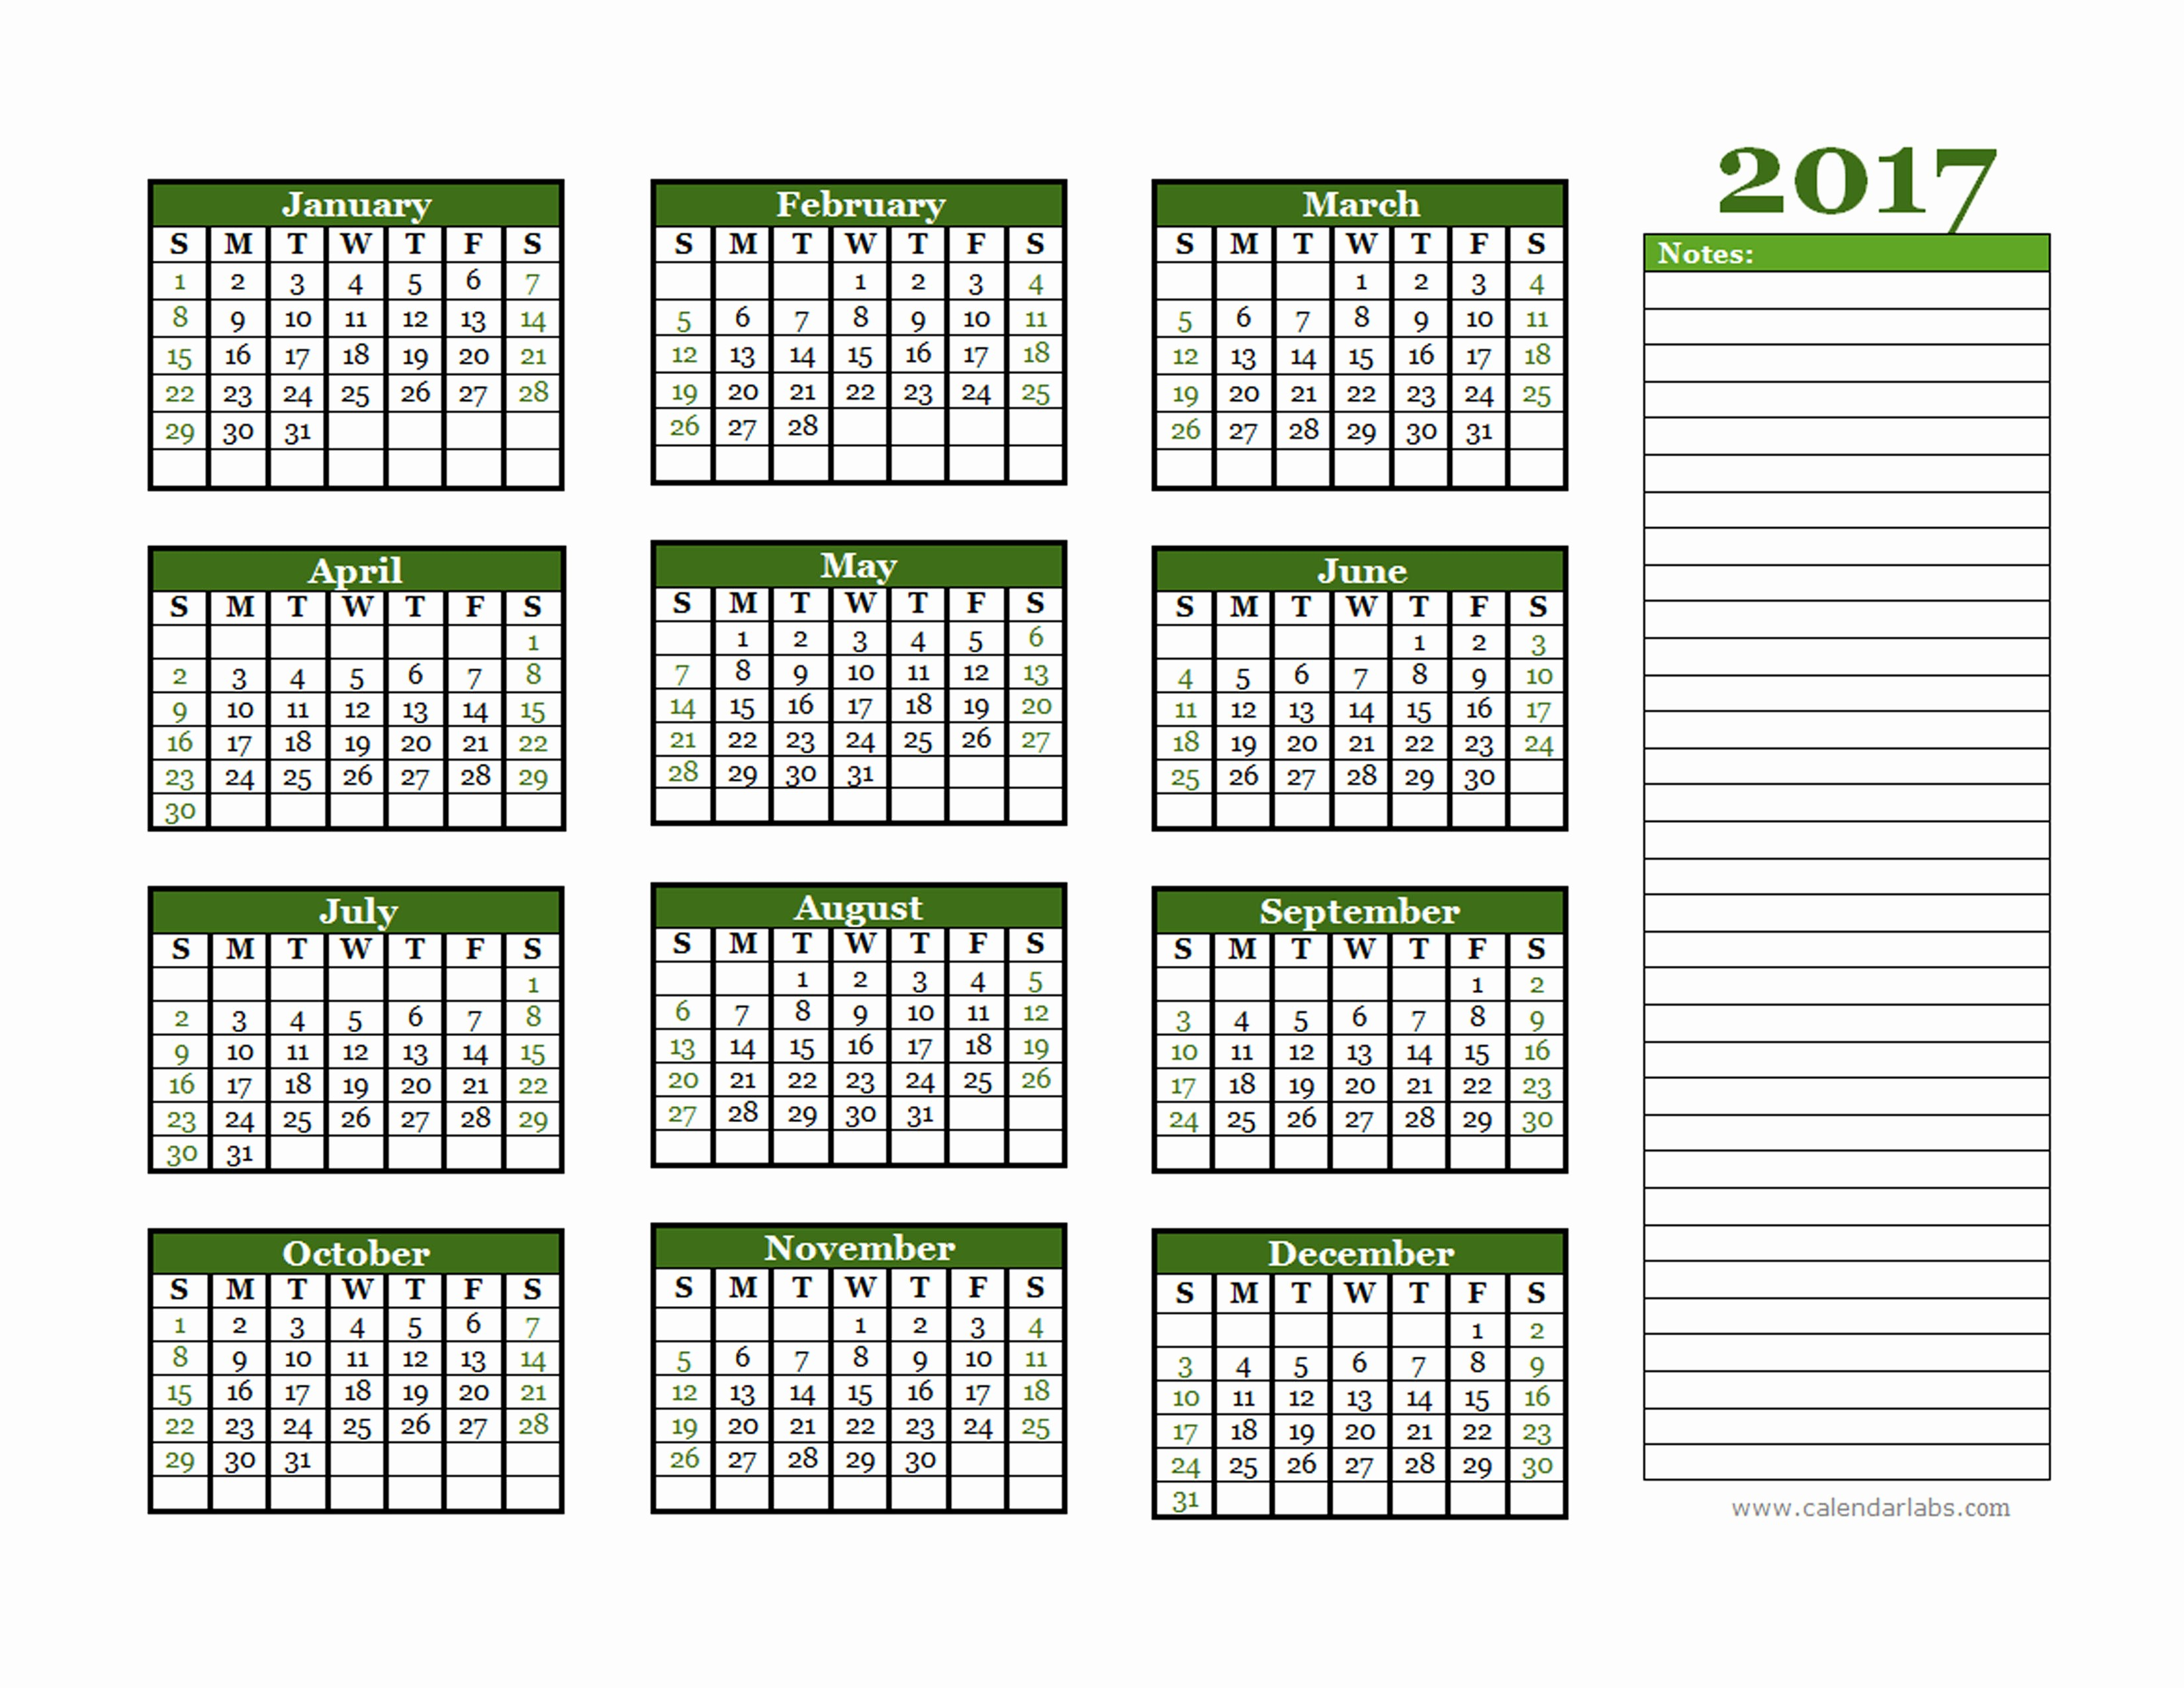 Free 2017 Yearly Calendar Template Best Of 2017 Yearly Calendar with Blank Notes Free Printable